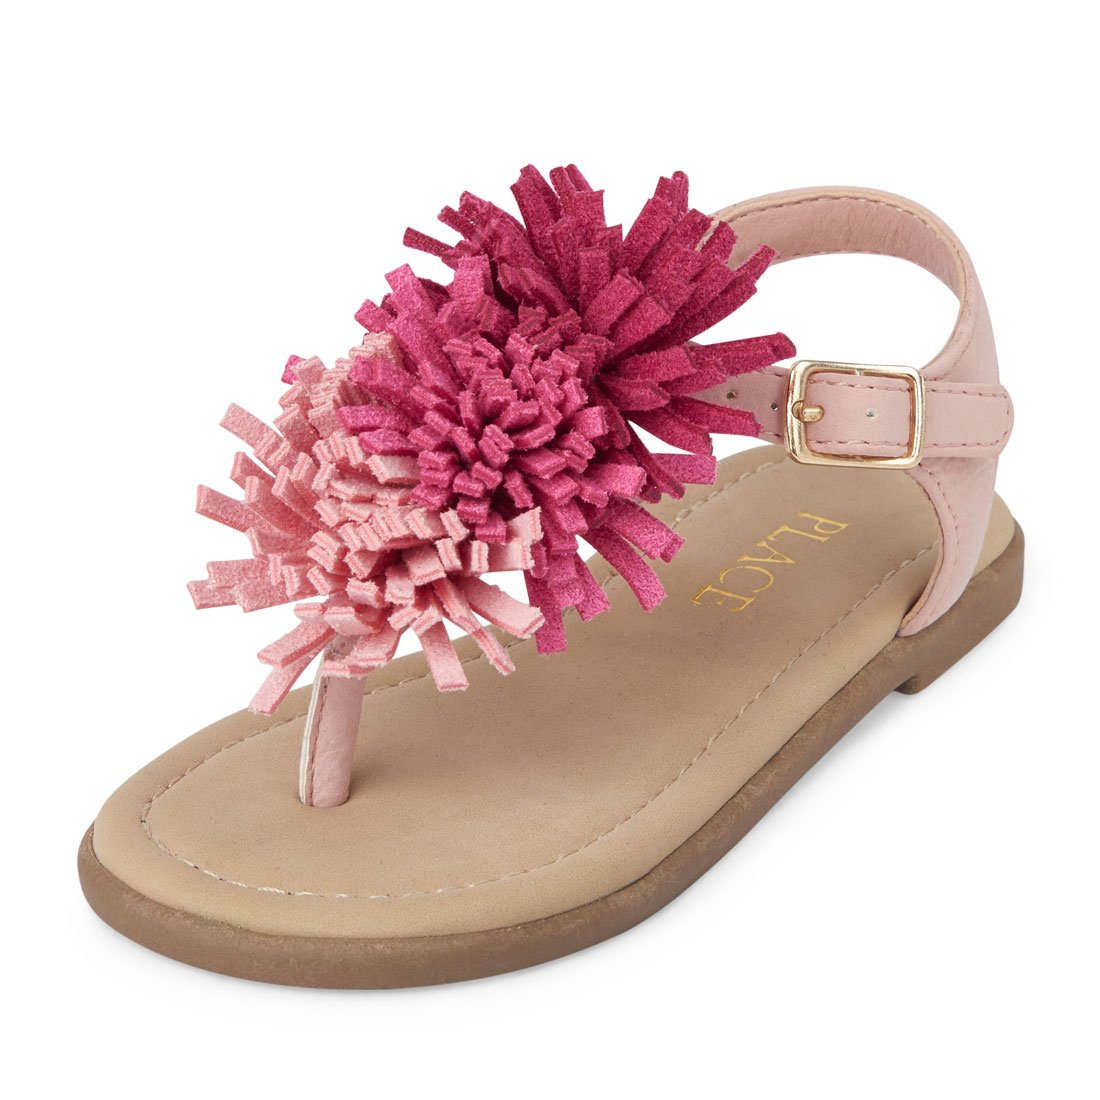 The Children's Place Kids' Tg Pom Zahara Sandal The Children's Place